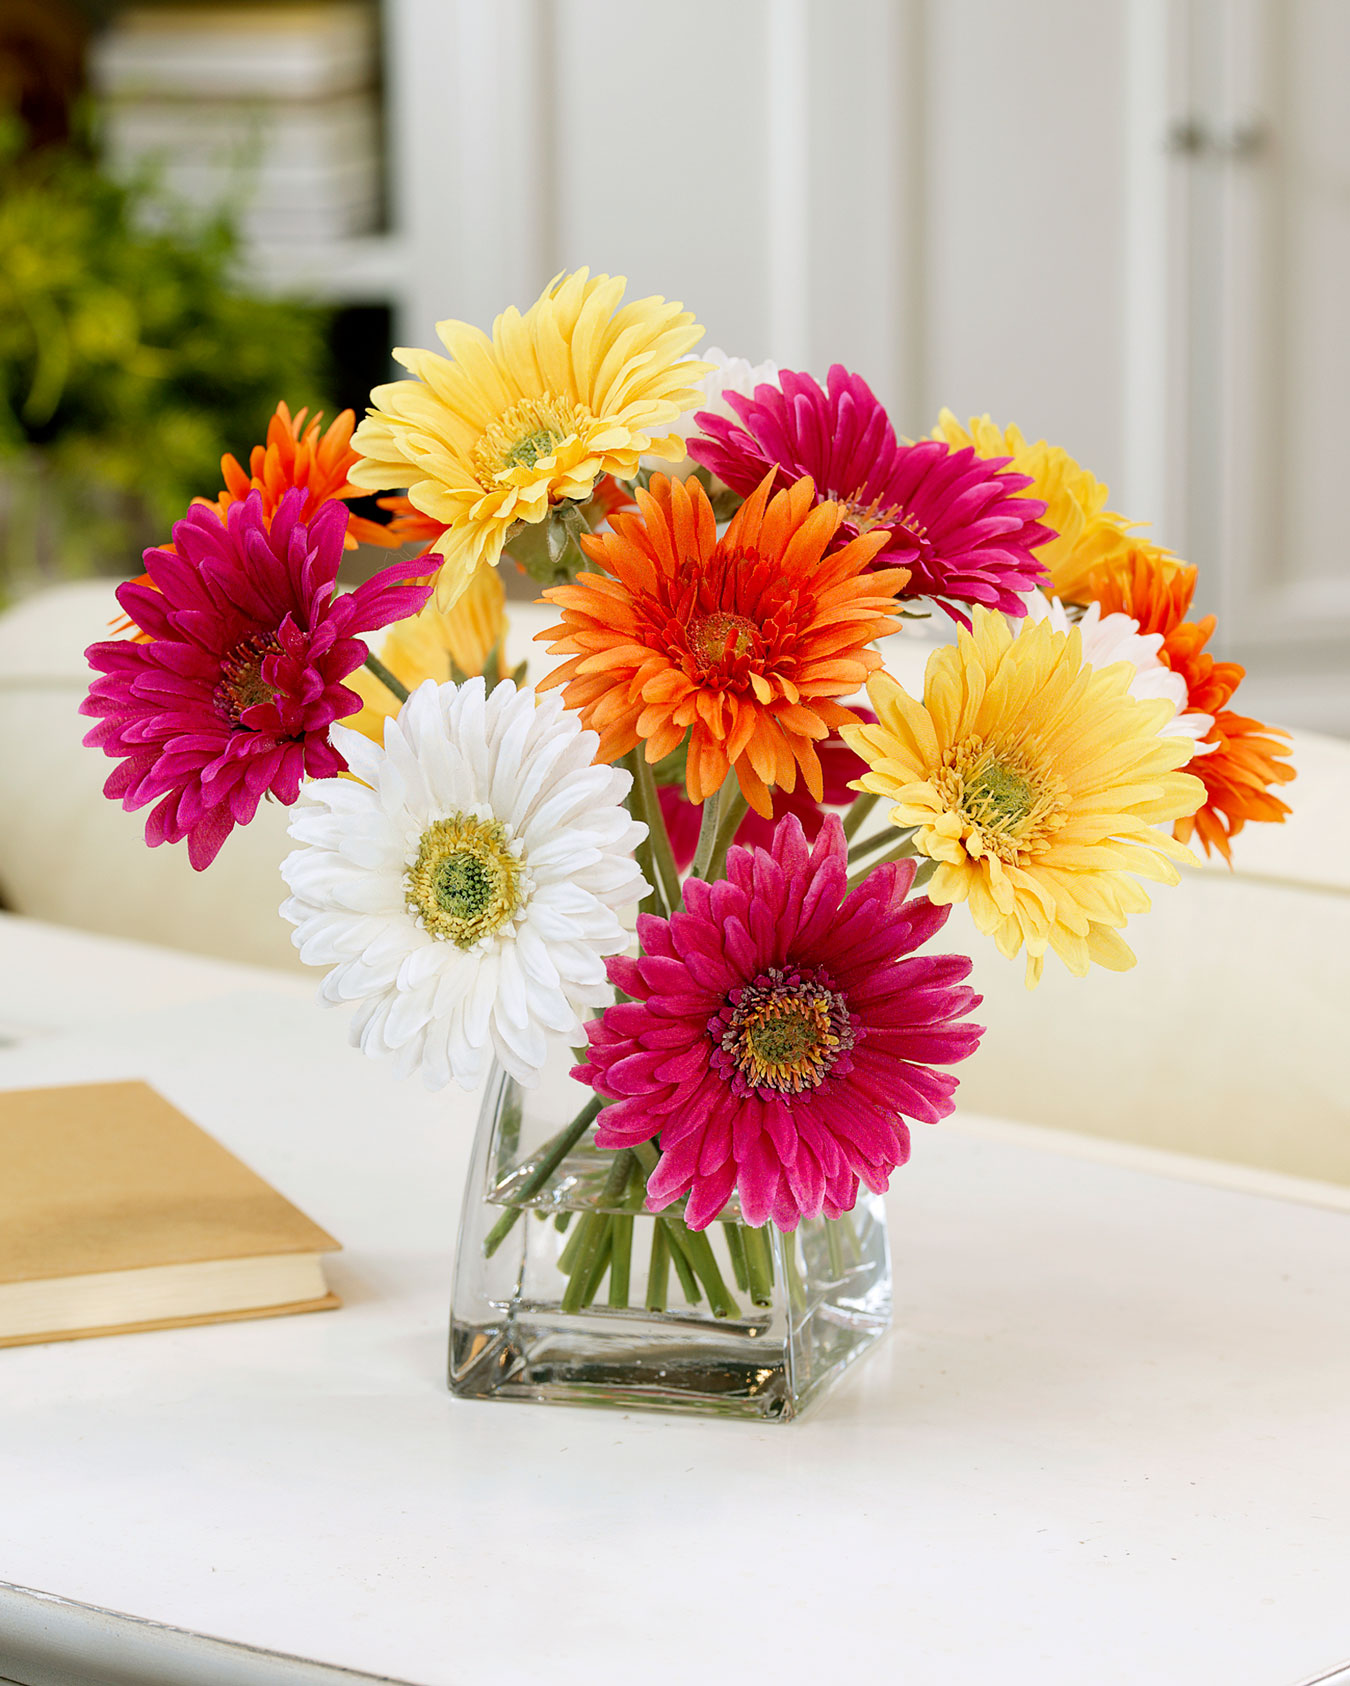 Decorate Happy with Gerbera Daisy Silk Flower Centerpiece at Petals